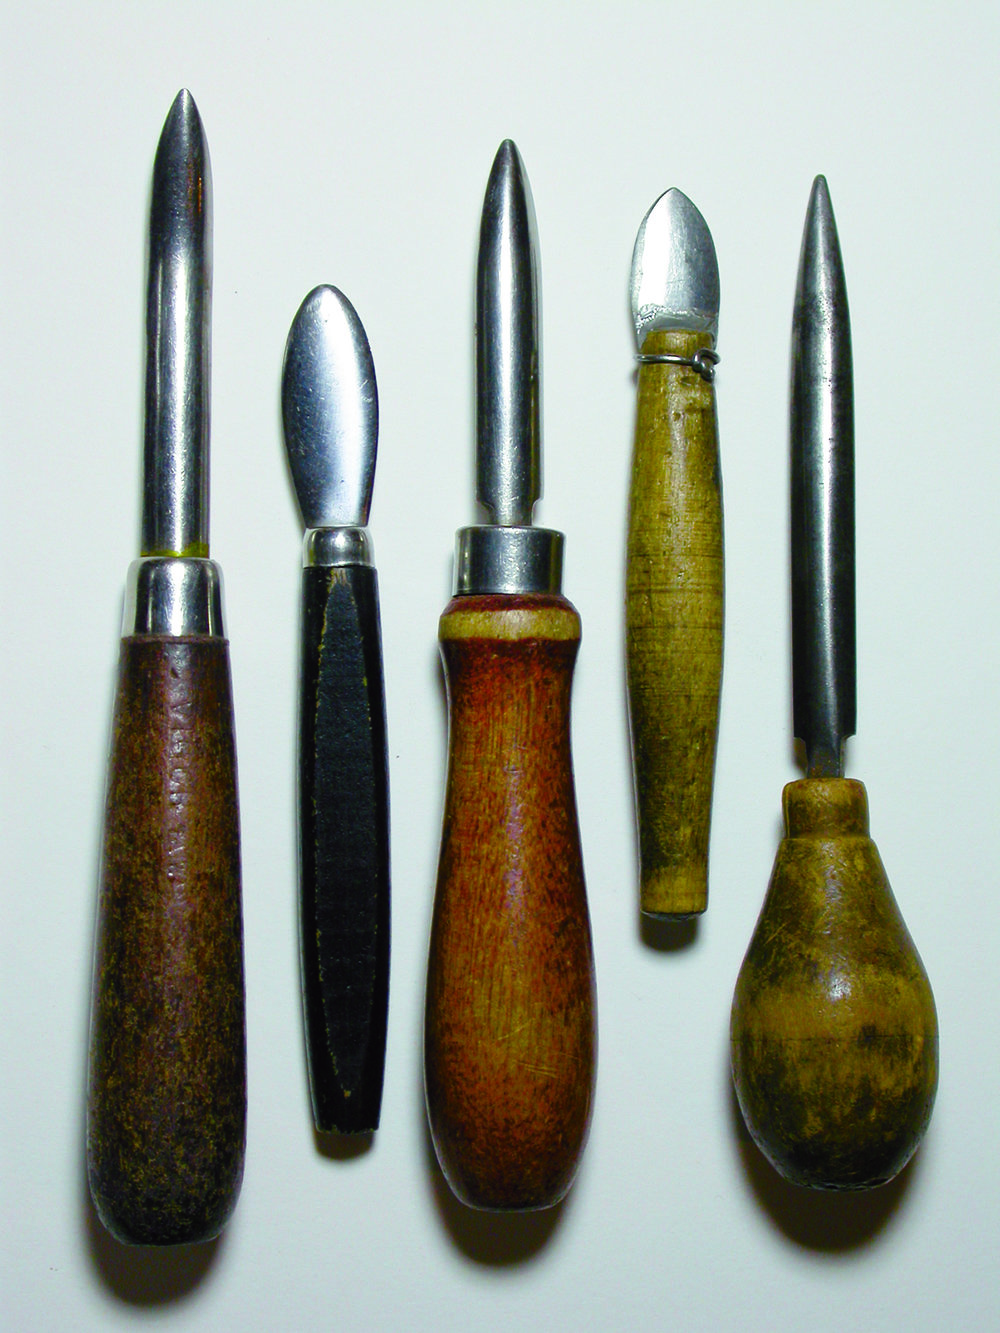 Tools of the Trade - Decades of handling, shuffling around on the tool bench, repairing thousands of pieces of jewelry...